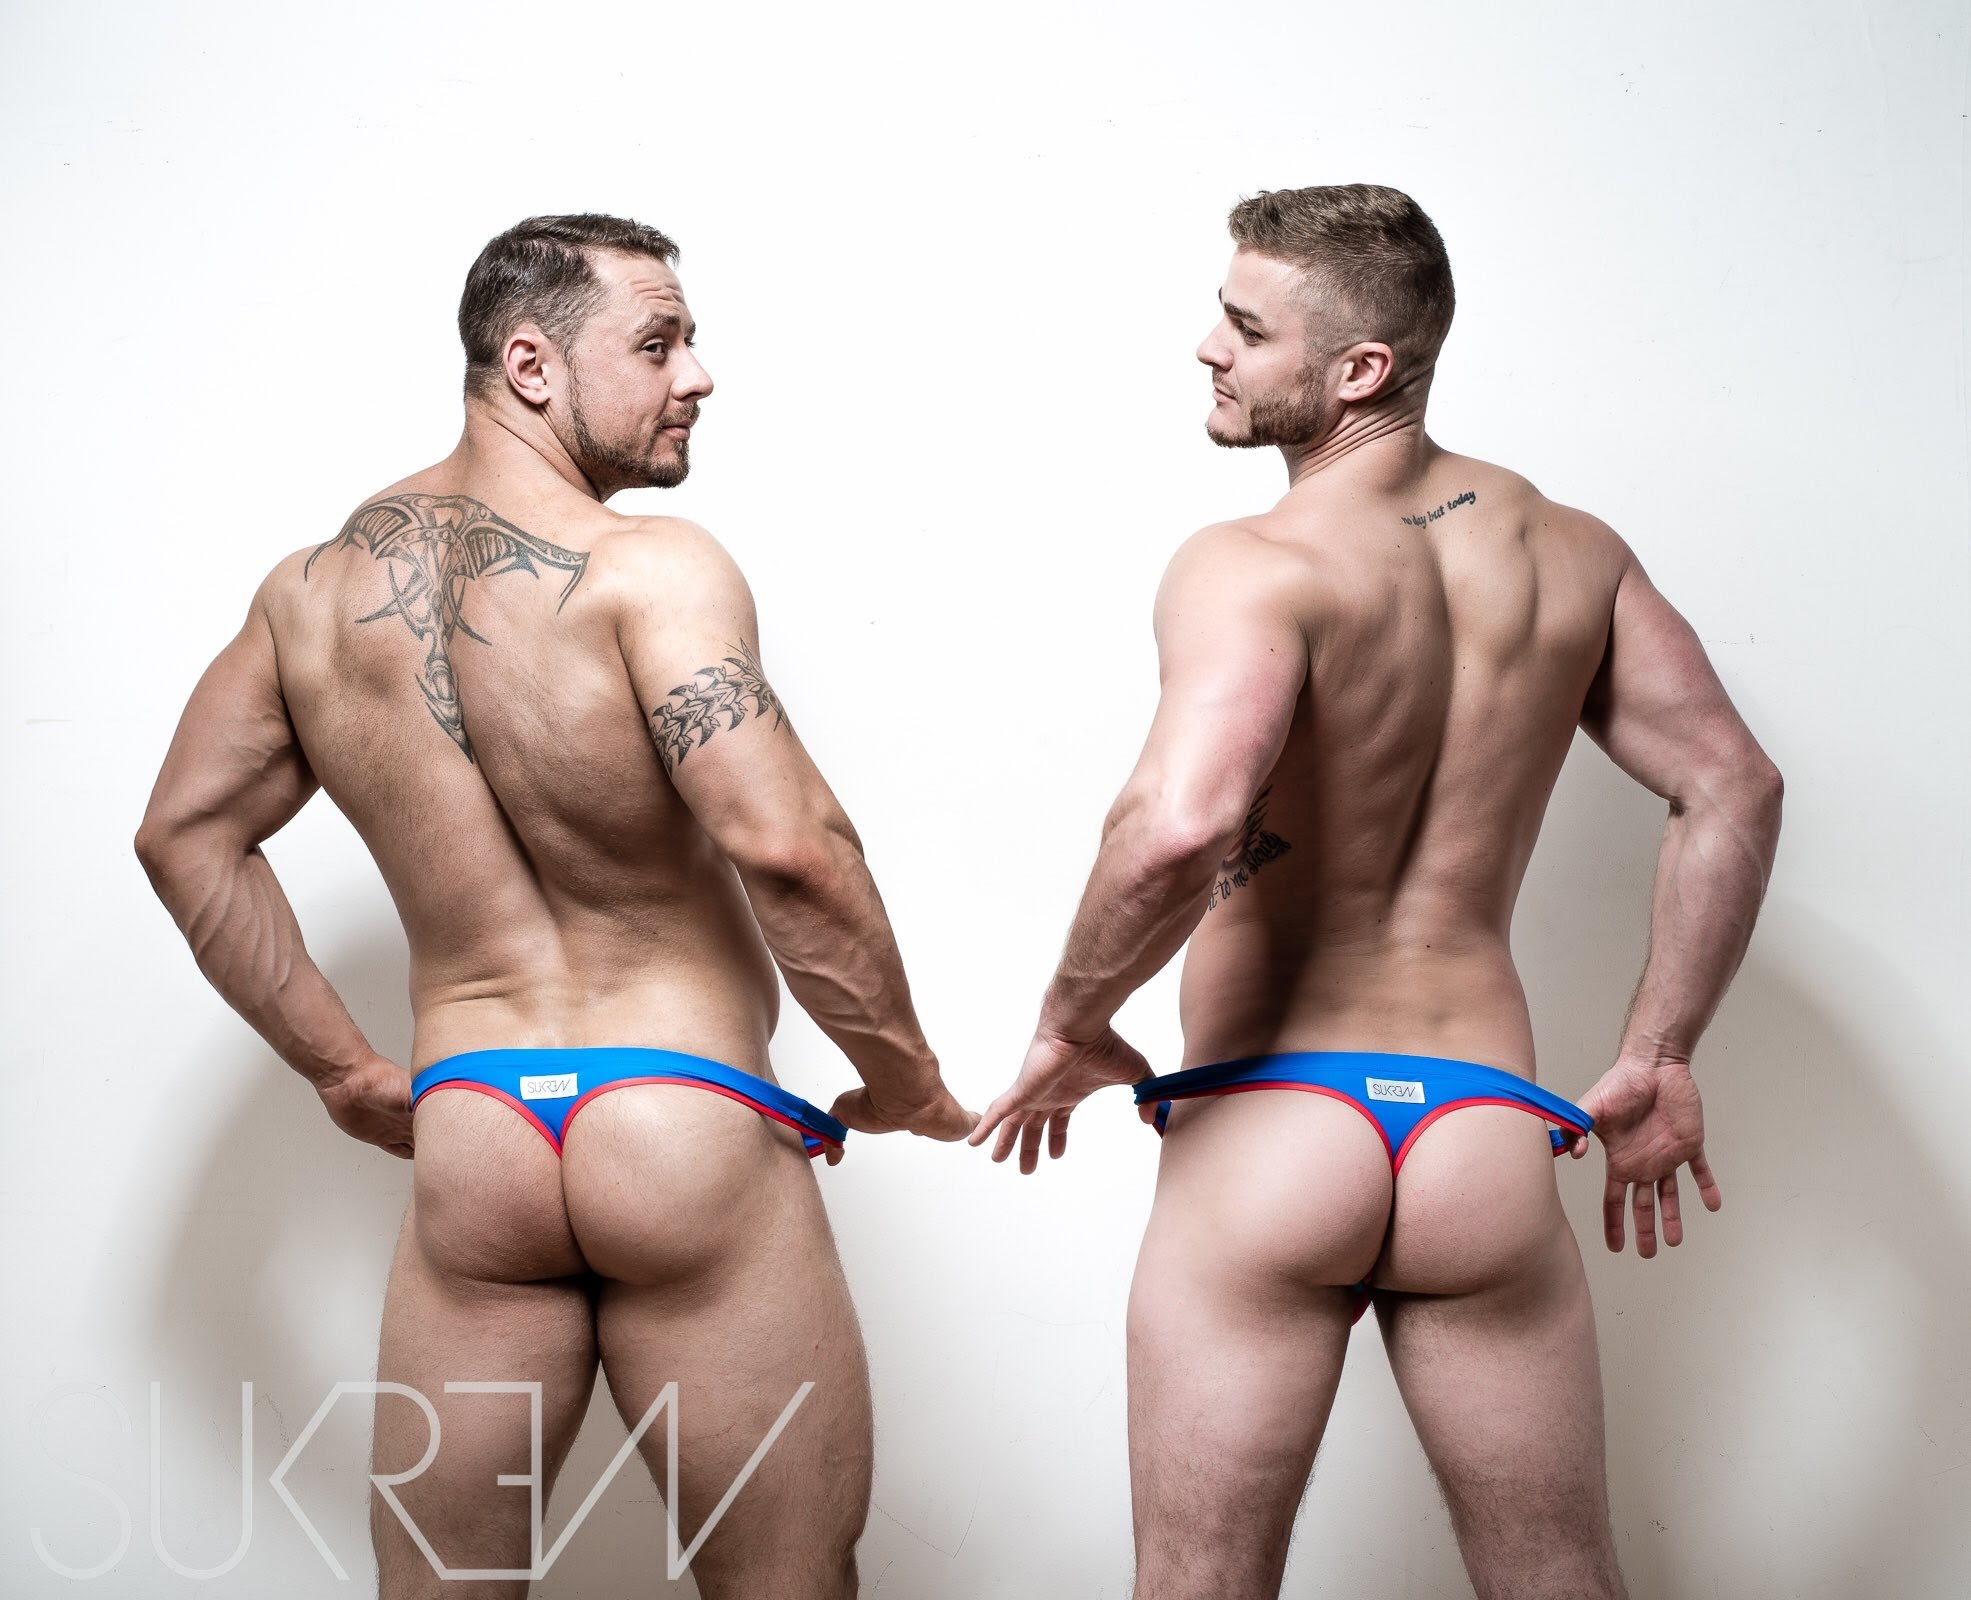 Brief Distraction featuring a TBT from Sukrew